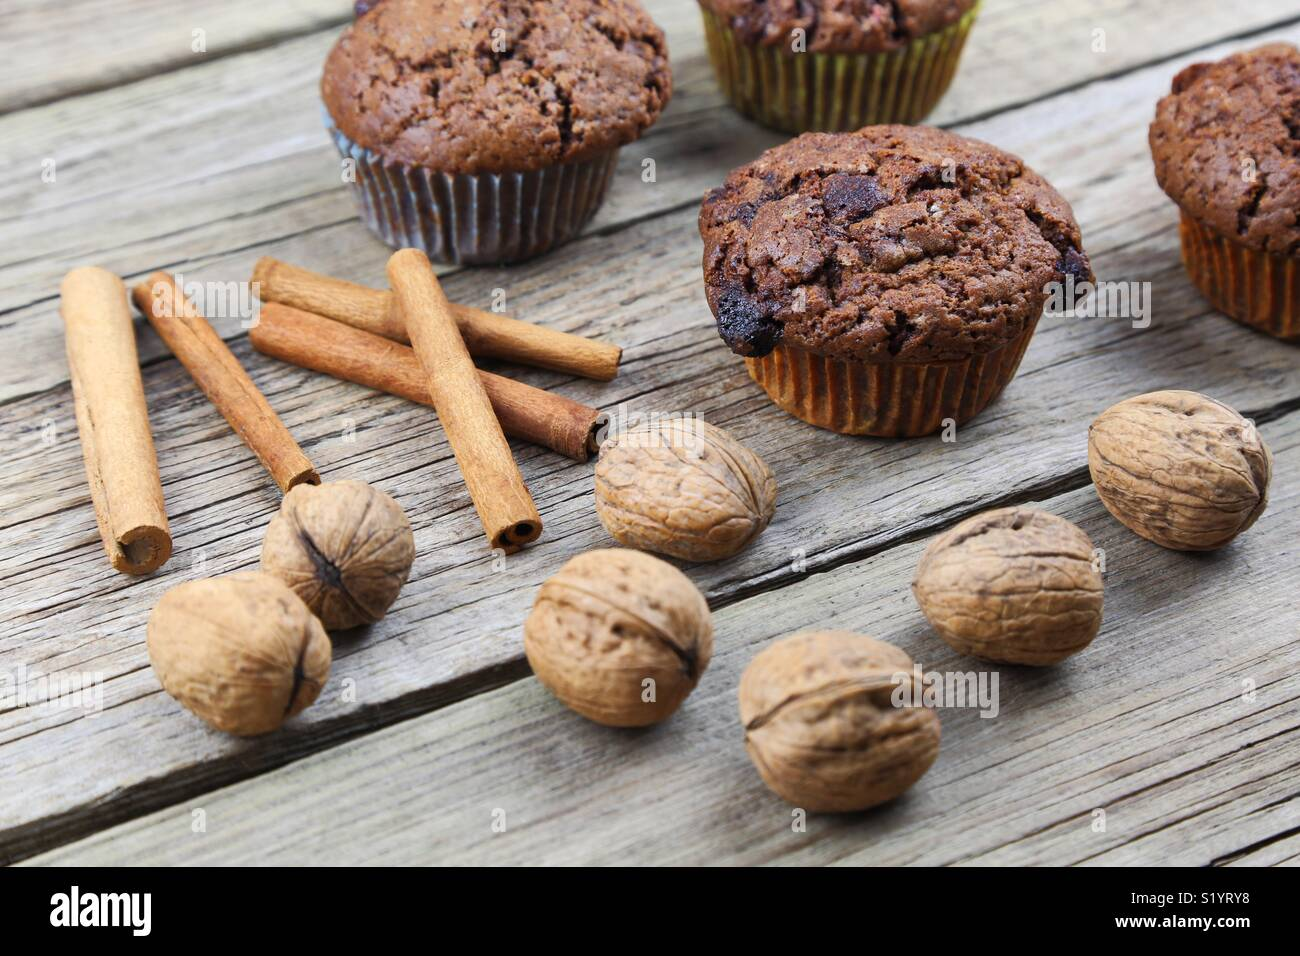 Close up of chocolate muffins on a wooden background - Stock Image